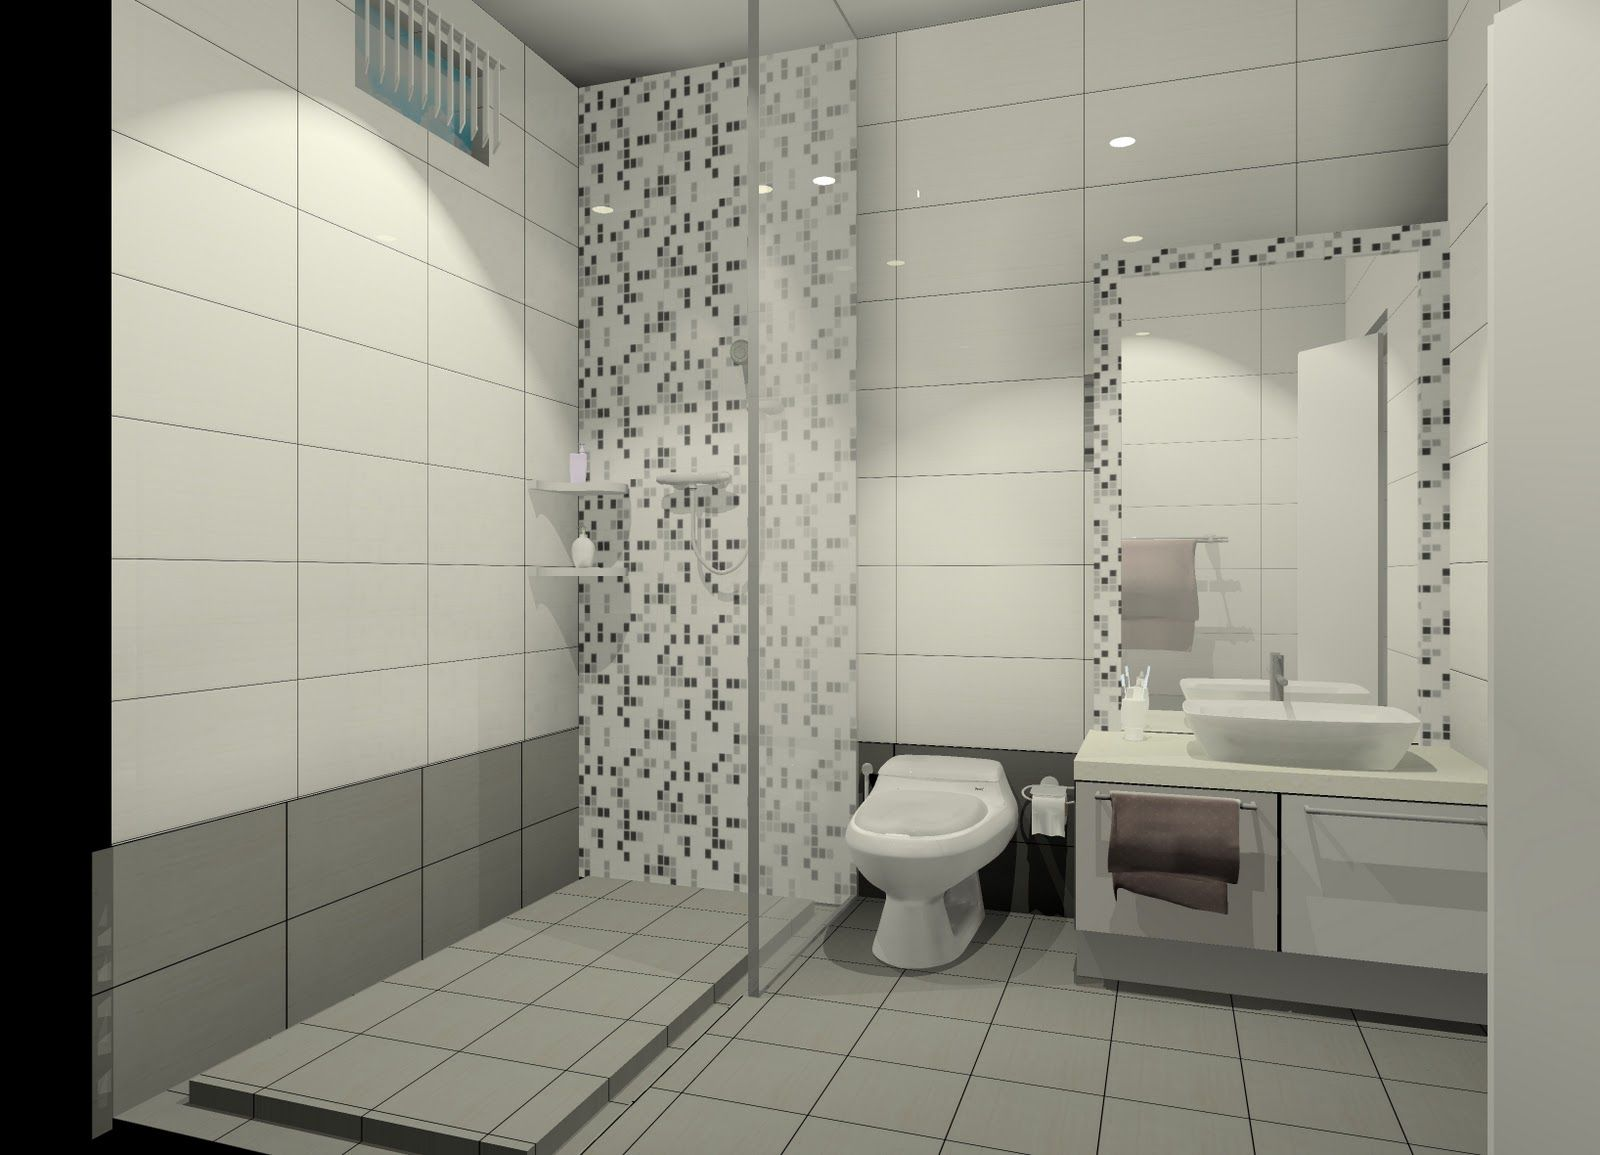 Toilet Tiles Design Bathroom Wall Tile Design Simple Bathroom Wall Tiles Design